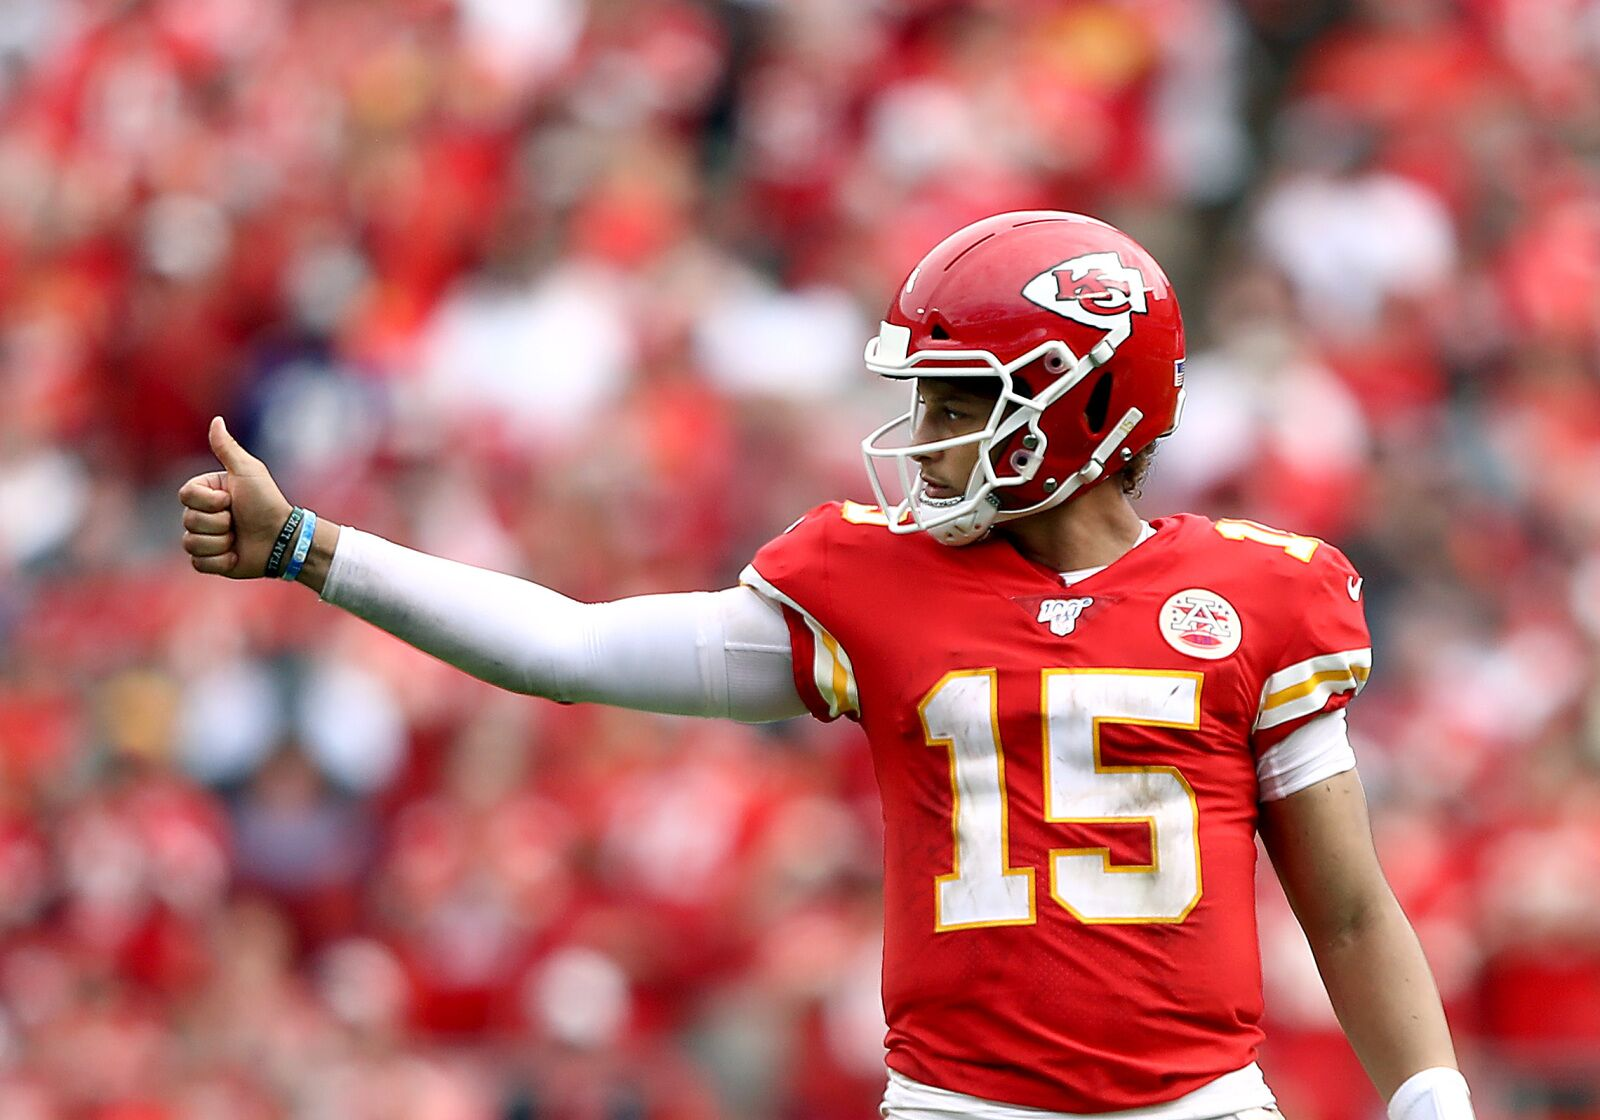 Chiefs remain Super Bowl contenders after Patrick Mahomes' injury